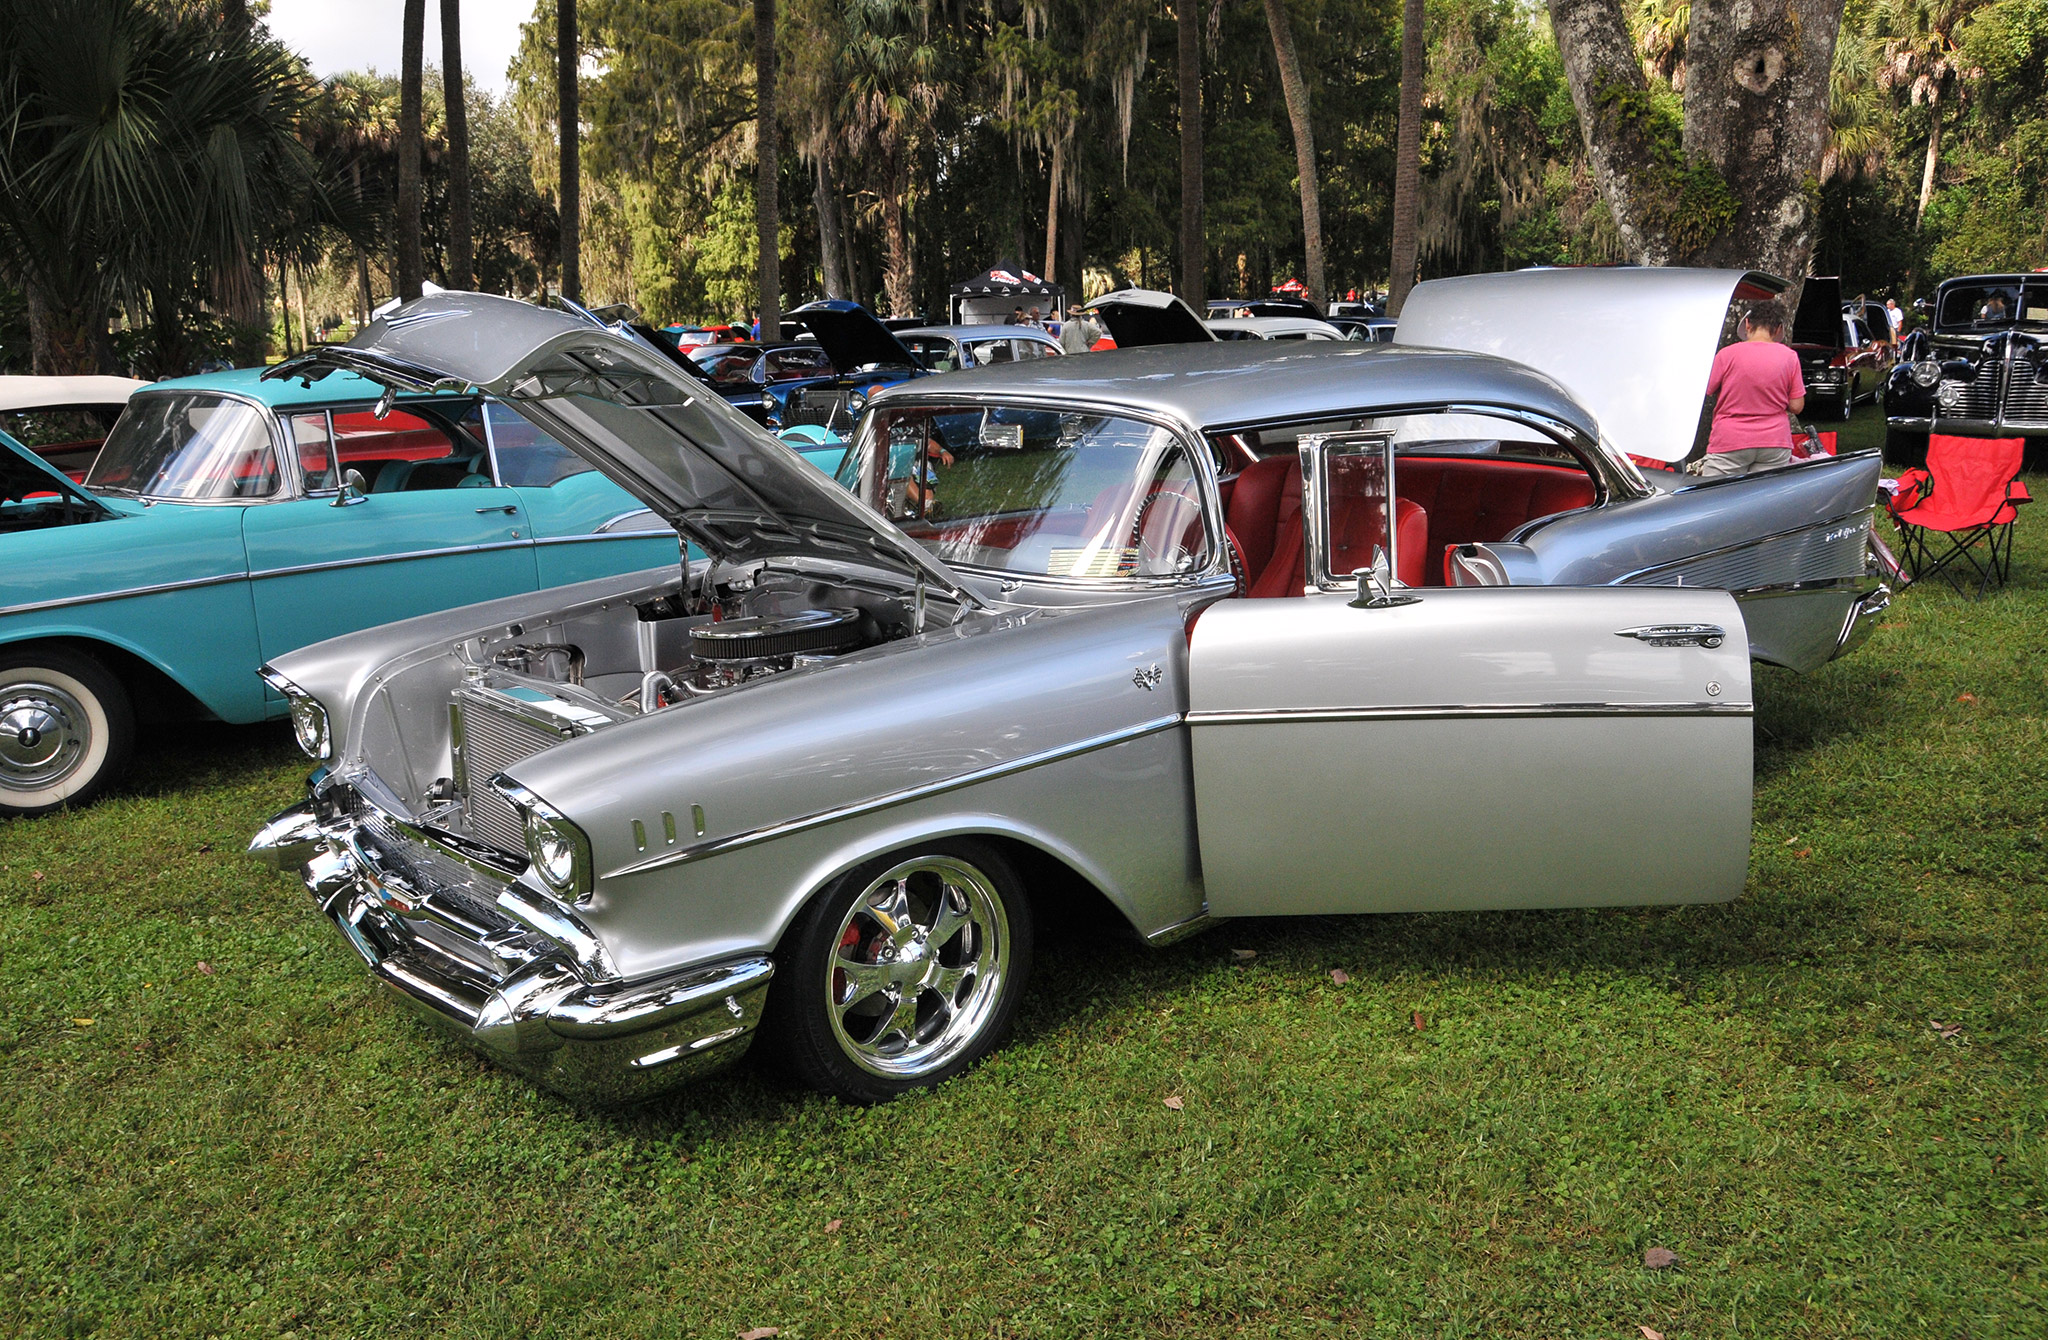 A crowd favorite was this highly detailed '57 Chevy of Joe and Connie Tuckey.